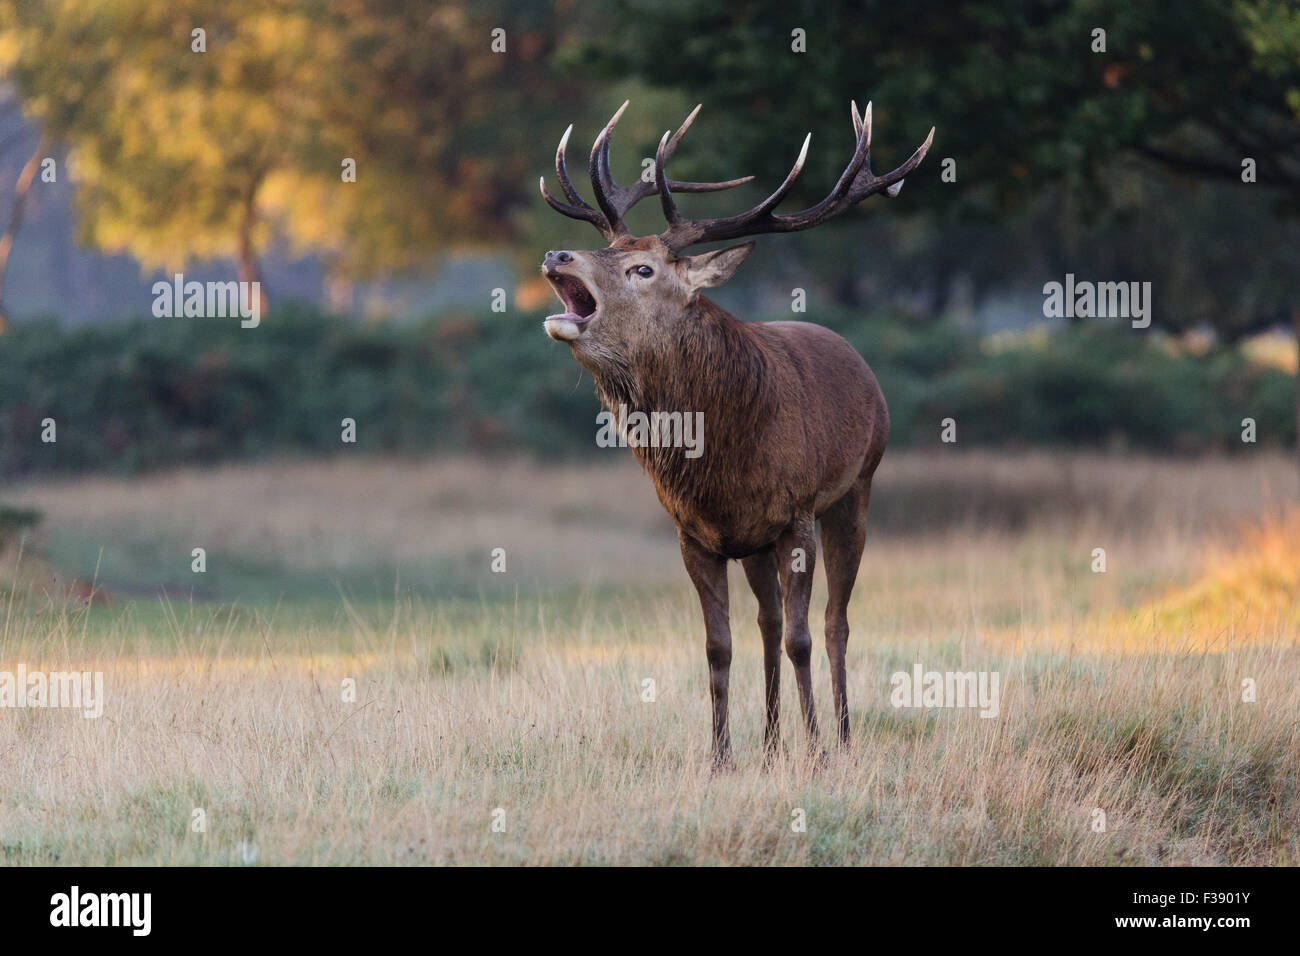 Richmond, London, UK, 1st October, 2015. UK Weather: A stag deer roars during warm and sunny autumn weather in Richmond - Stock Image